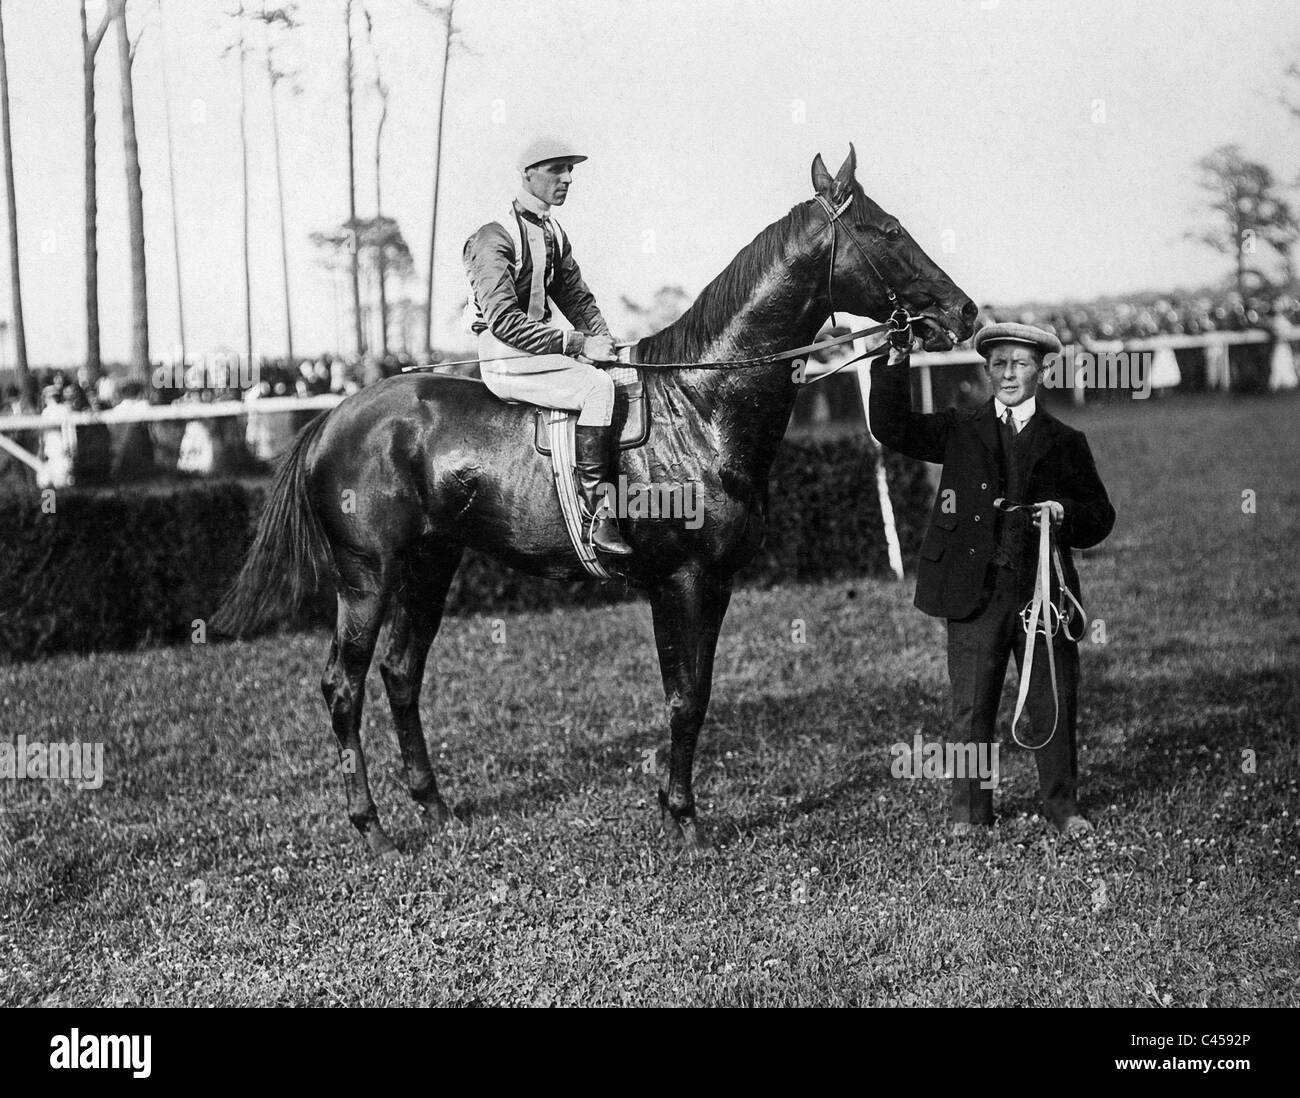 Jockey Childs with 'Fervor' at a horse race, 1910 - Stock Image